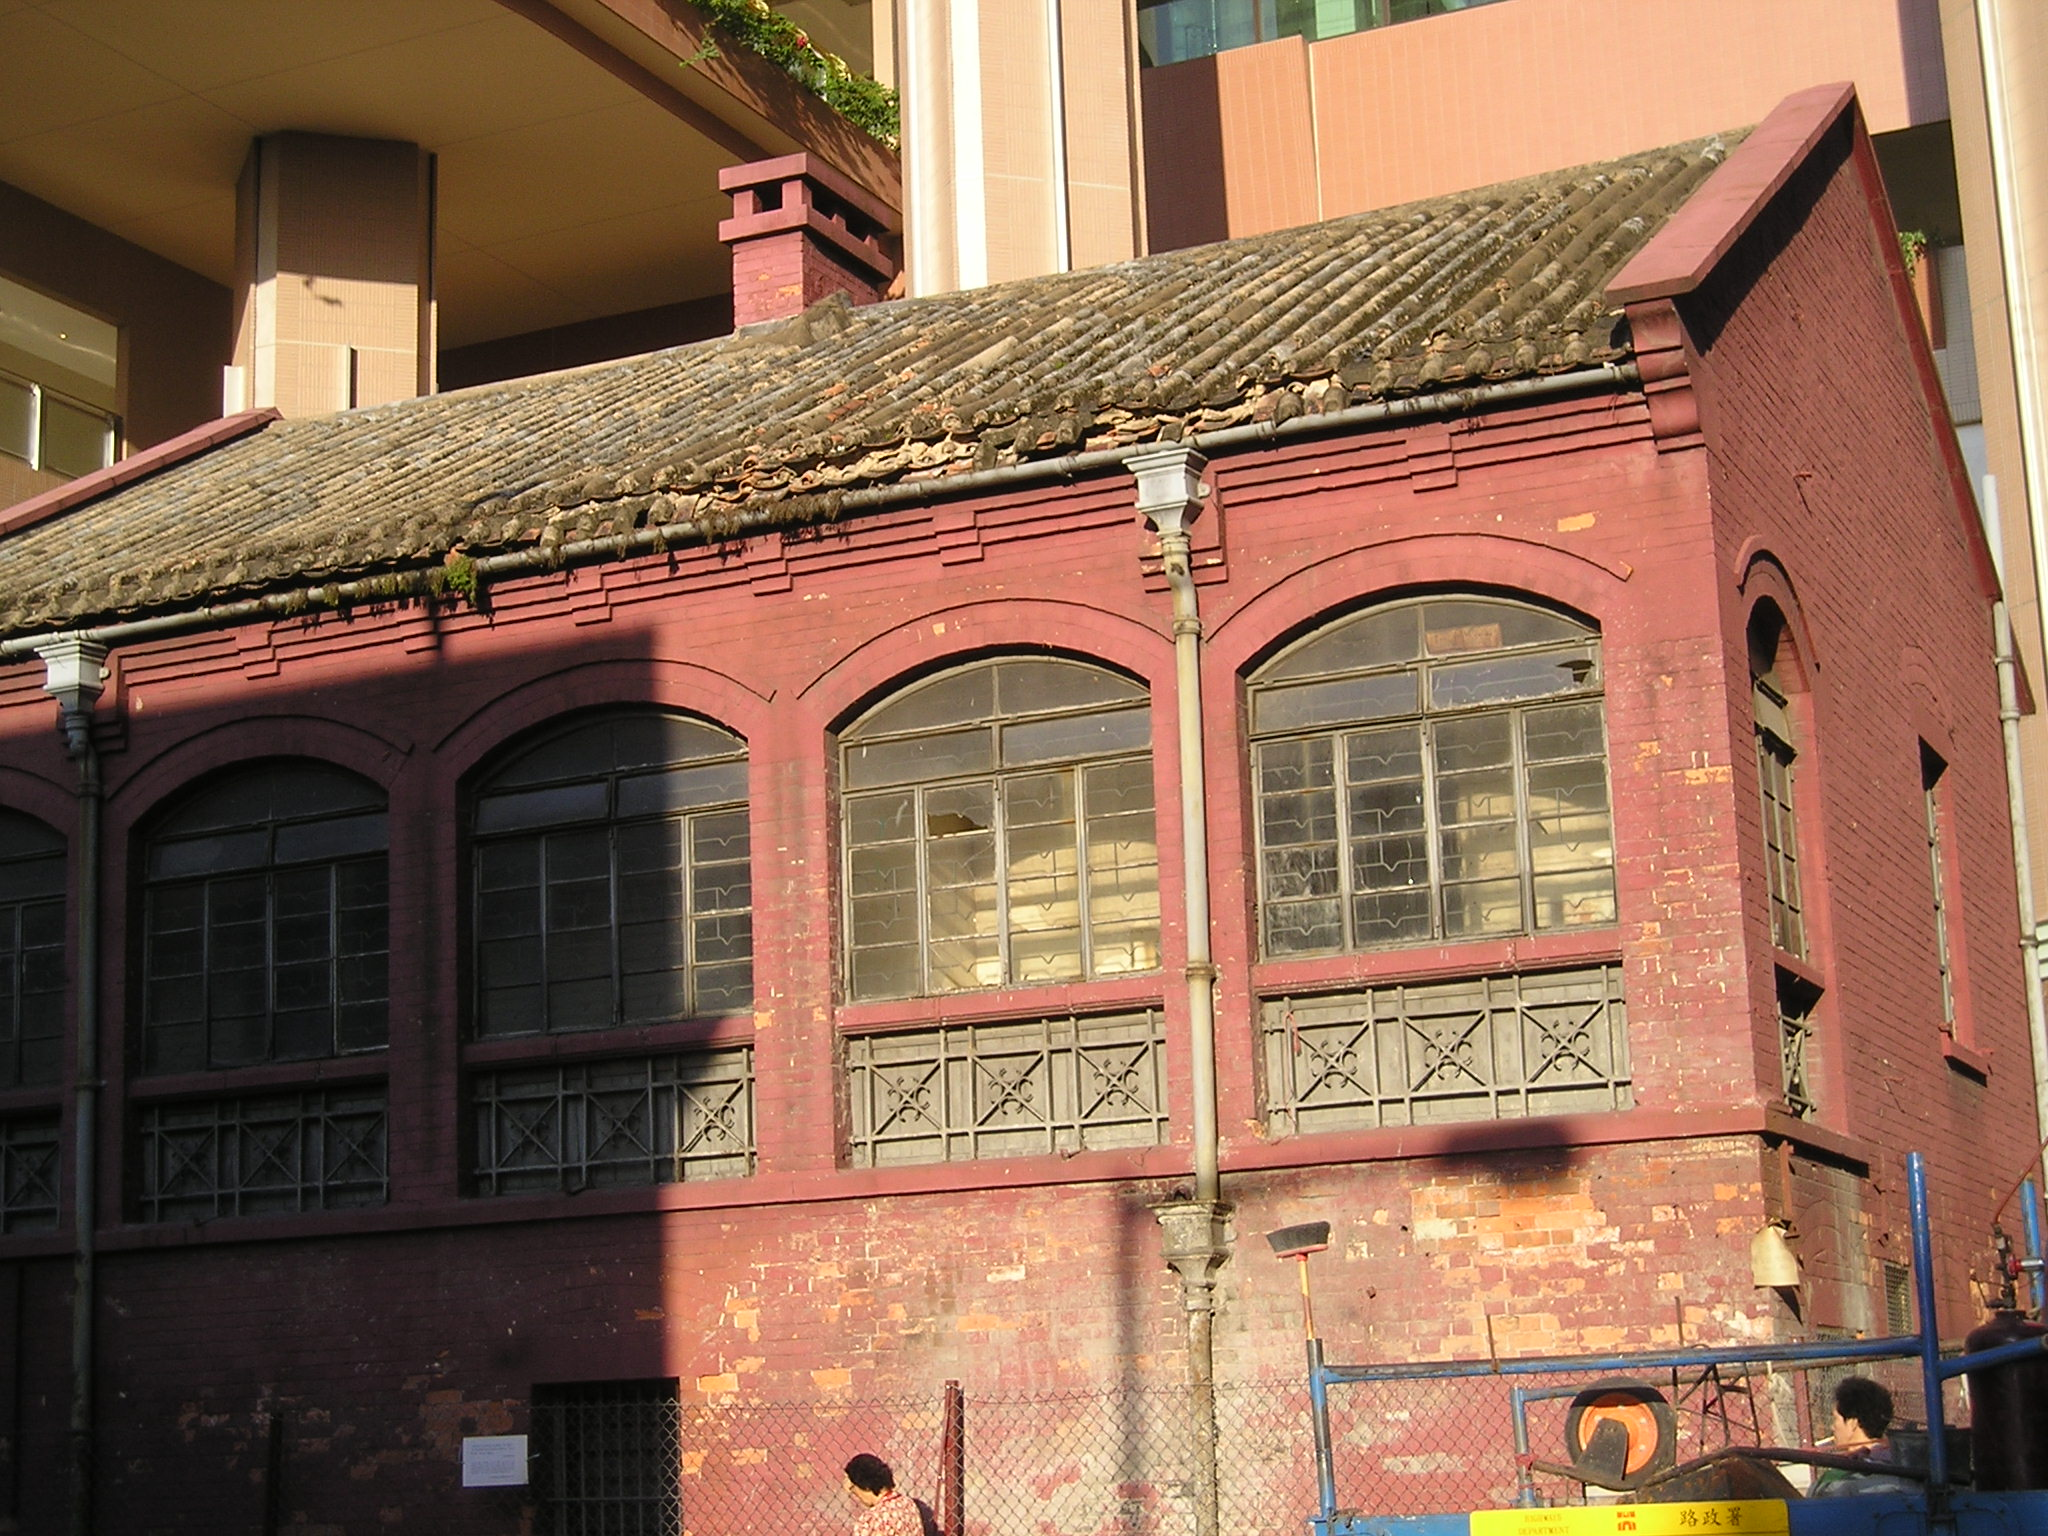 File:Red brick house in HK.jpg